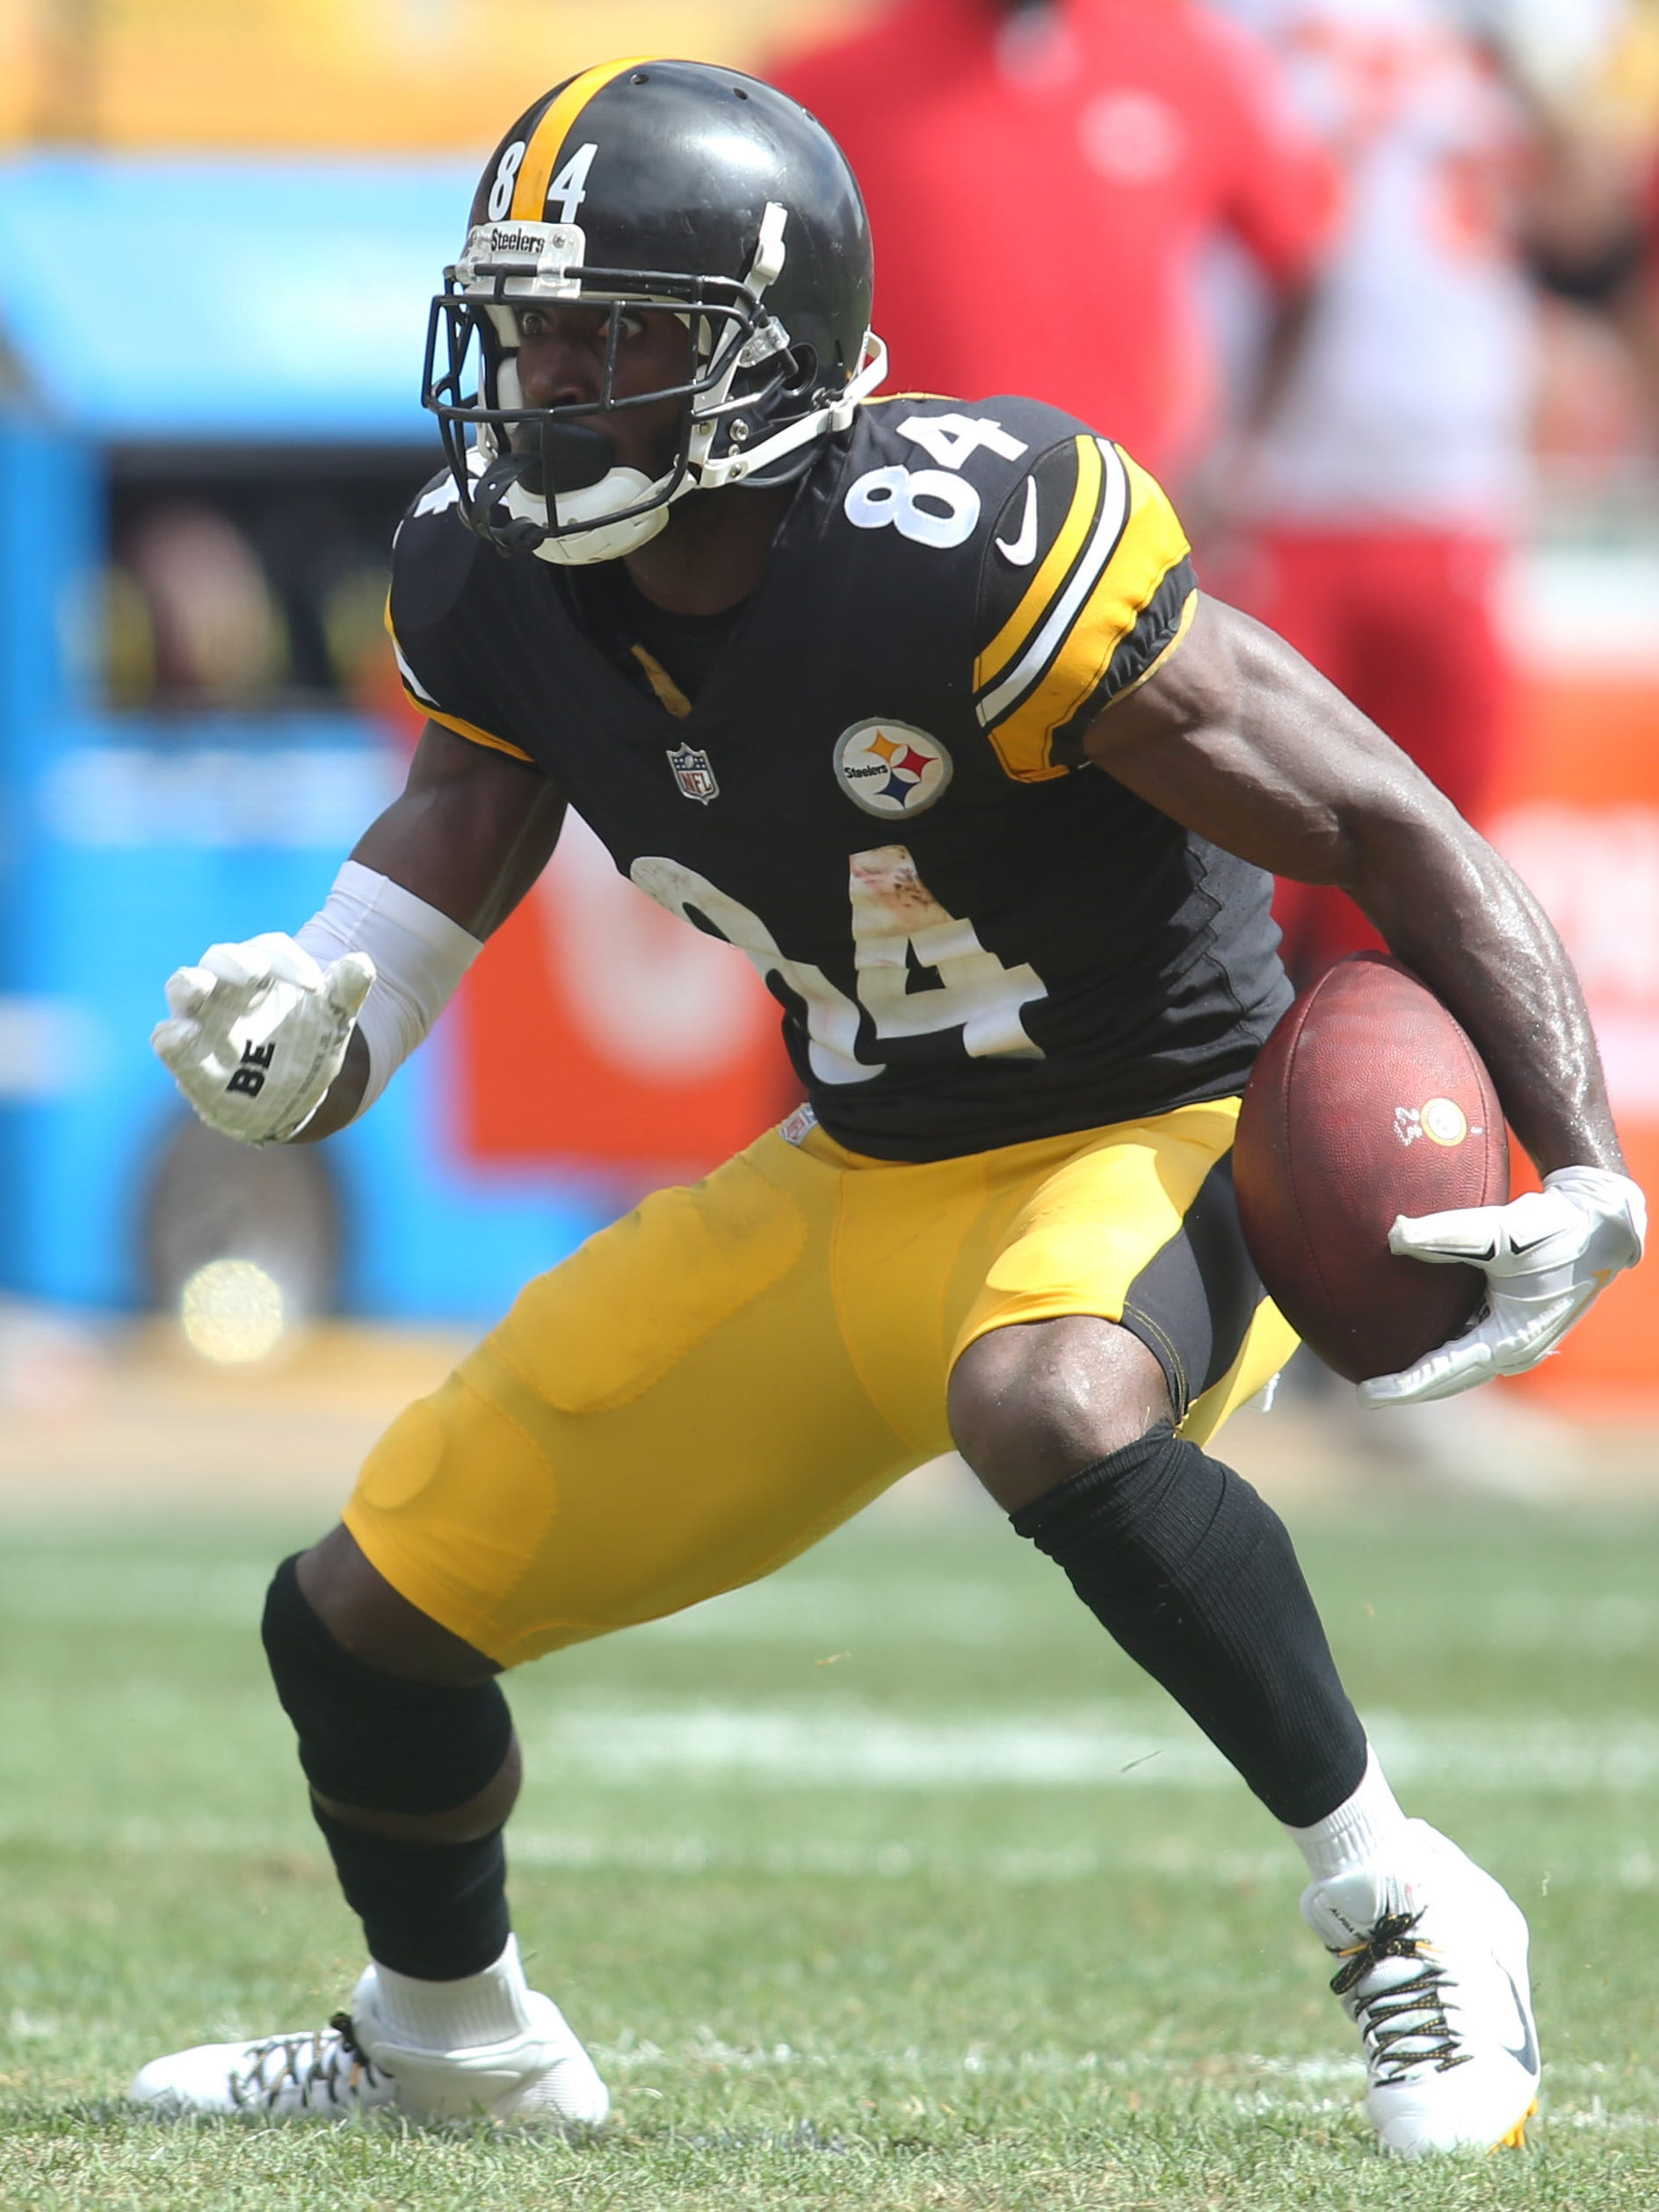 Pittsburgh Steelers wide receiver Antonio Brown (84) runs after a catch against the Kansas City Chiefs during the second quarter at Heinz Field.